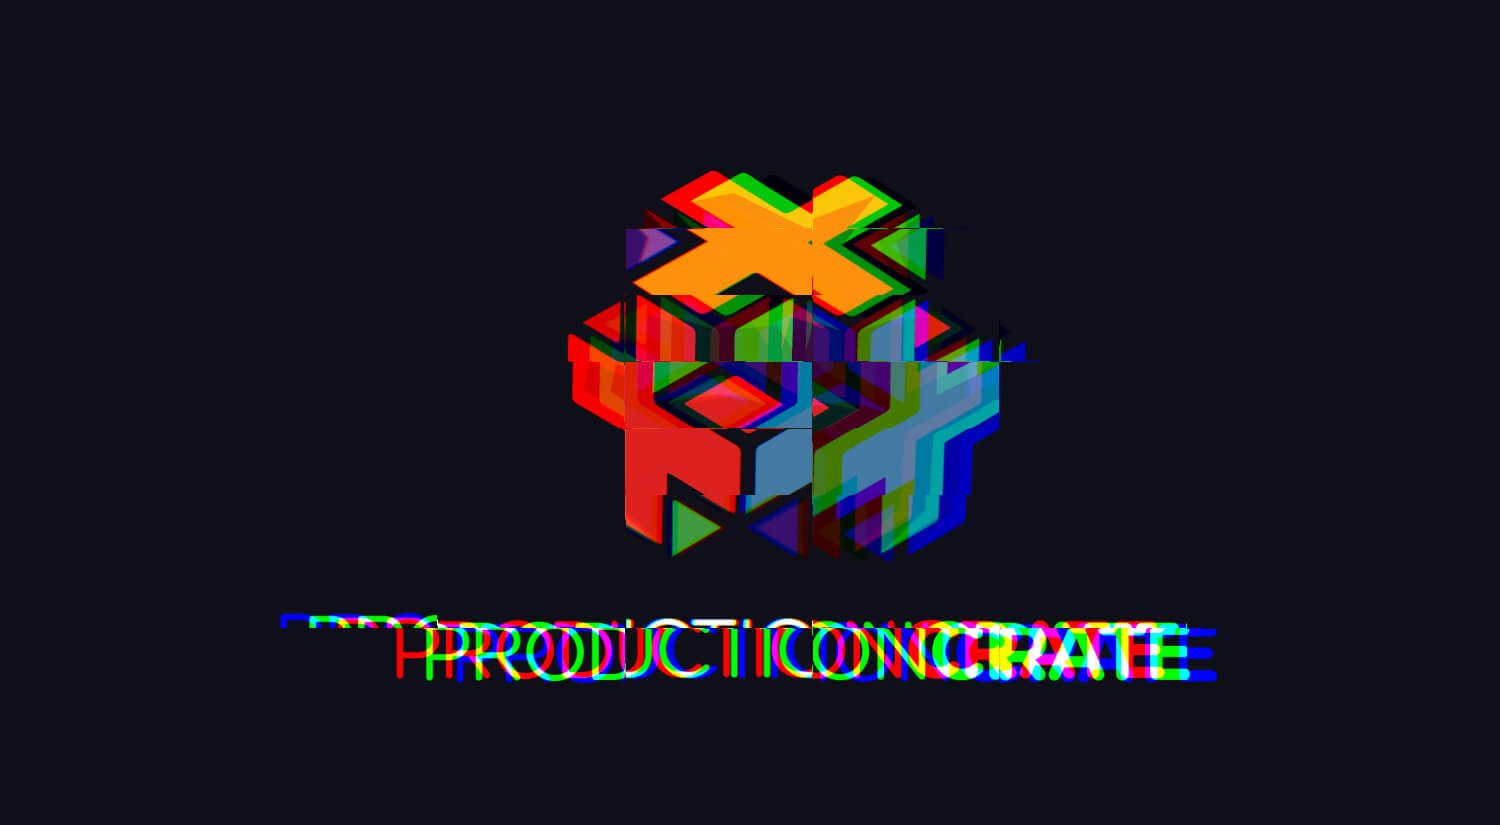 Chromatic Aberration Glitch